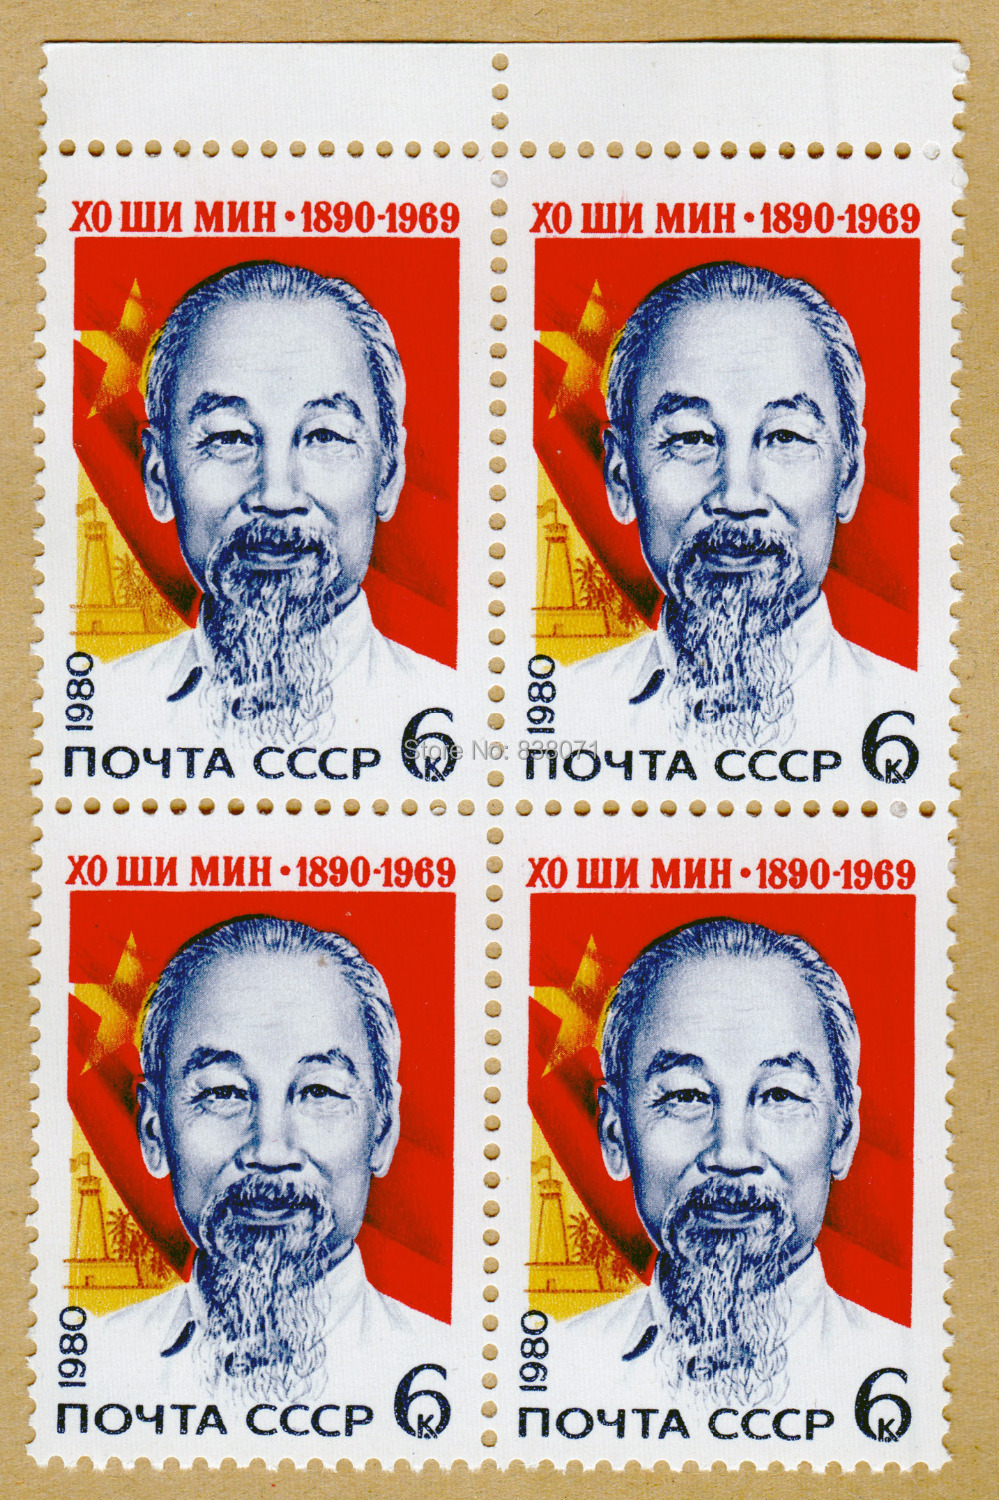 Russia Stamp,1980 The 90th anniversary of the birth of ho chi minh Vietnam leader, Soviet union stamps , 4 pieces joined sheet the golden ring of russia vladimir suzdal